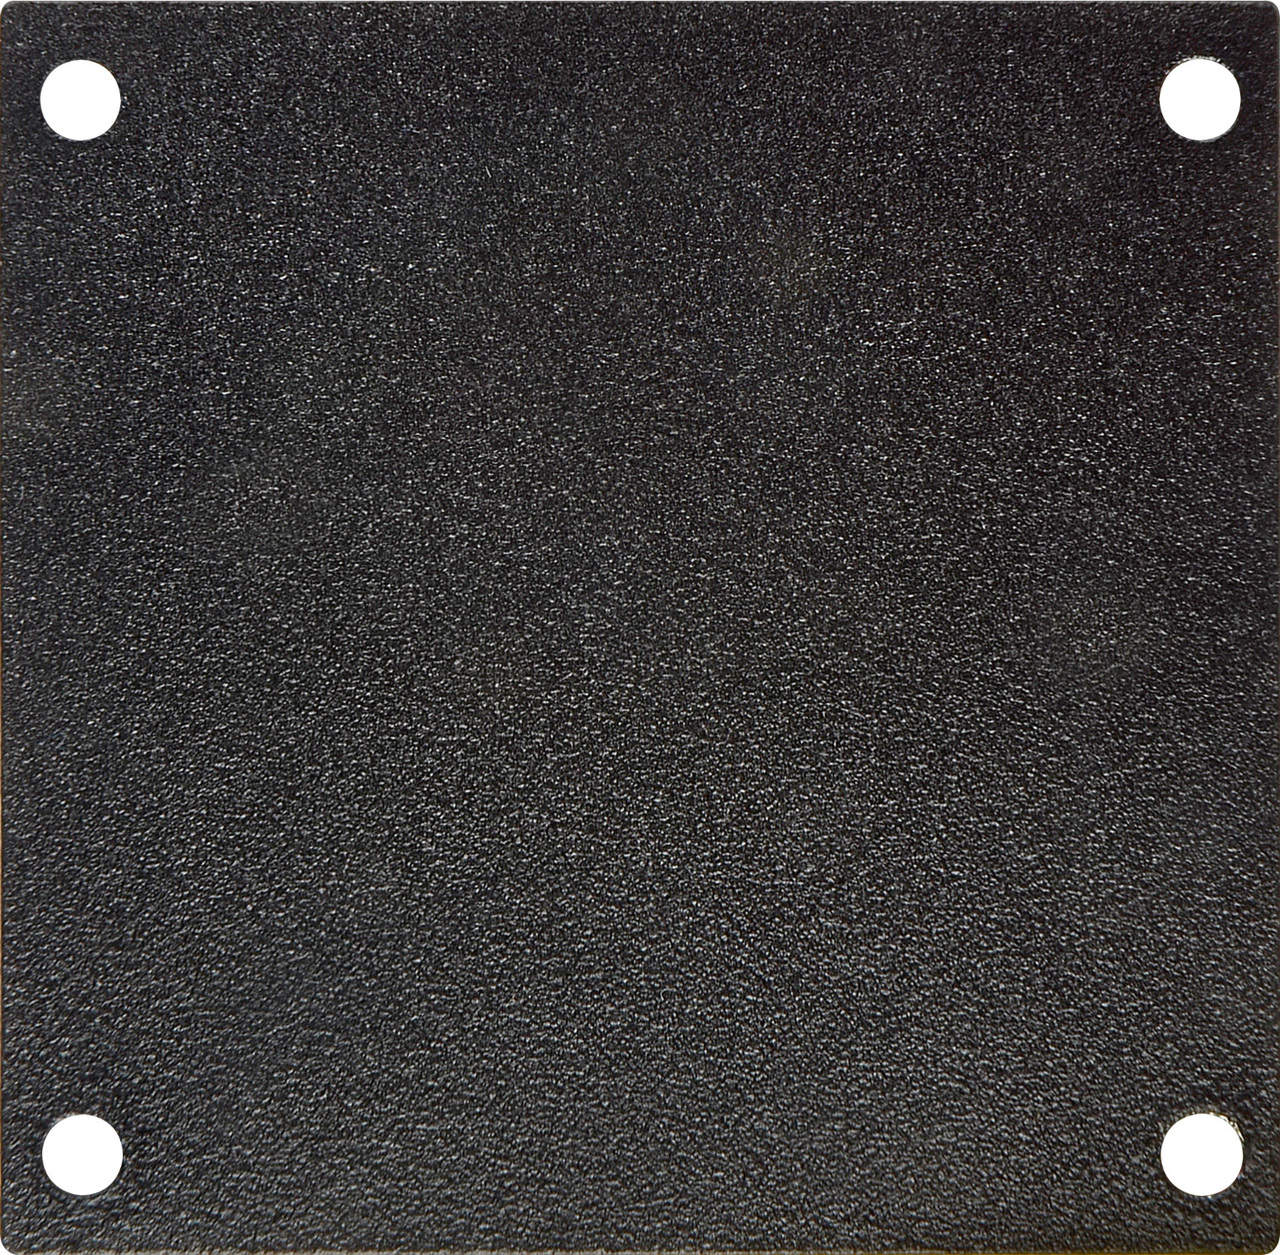 Hybrid Fiber Blank Cover Plate for HY45 System HY45-114